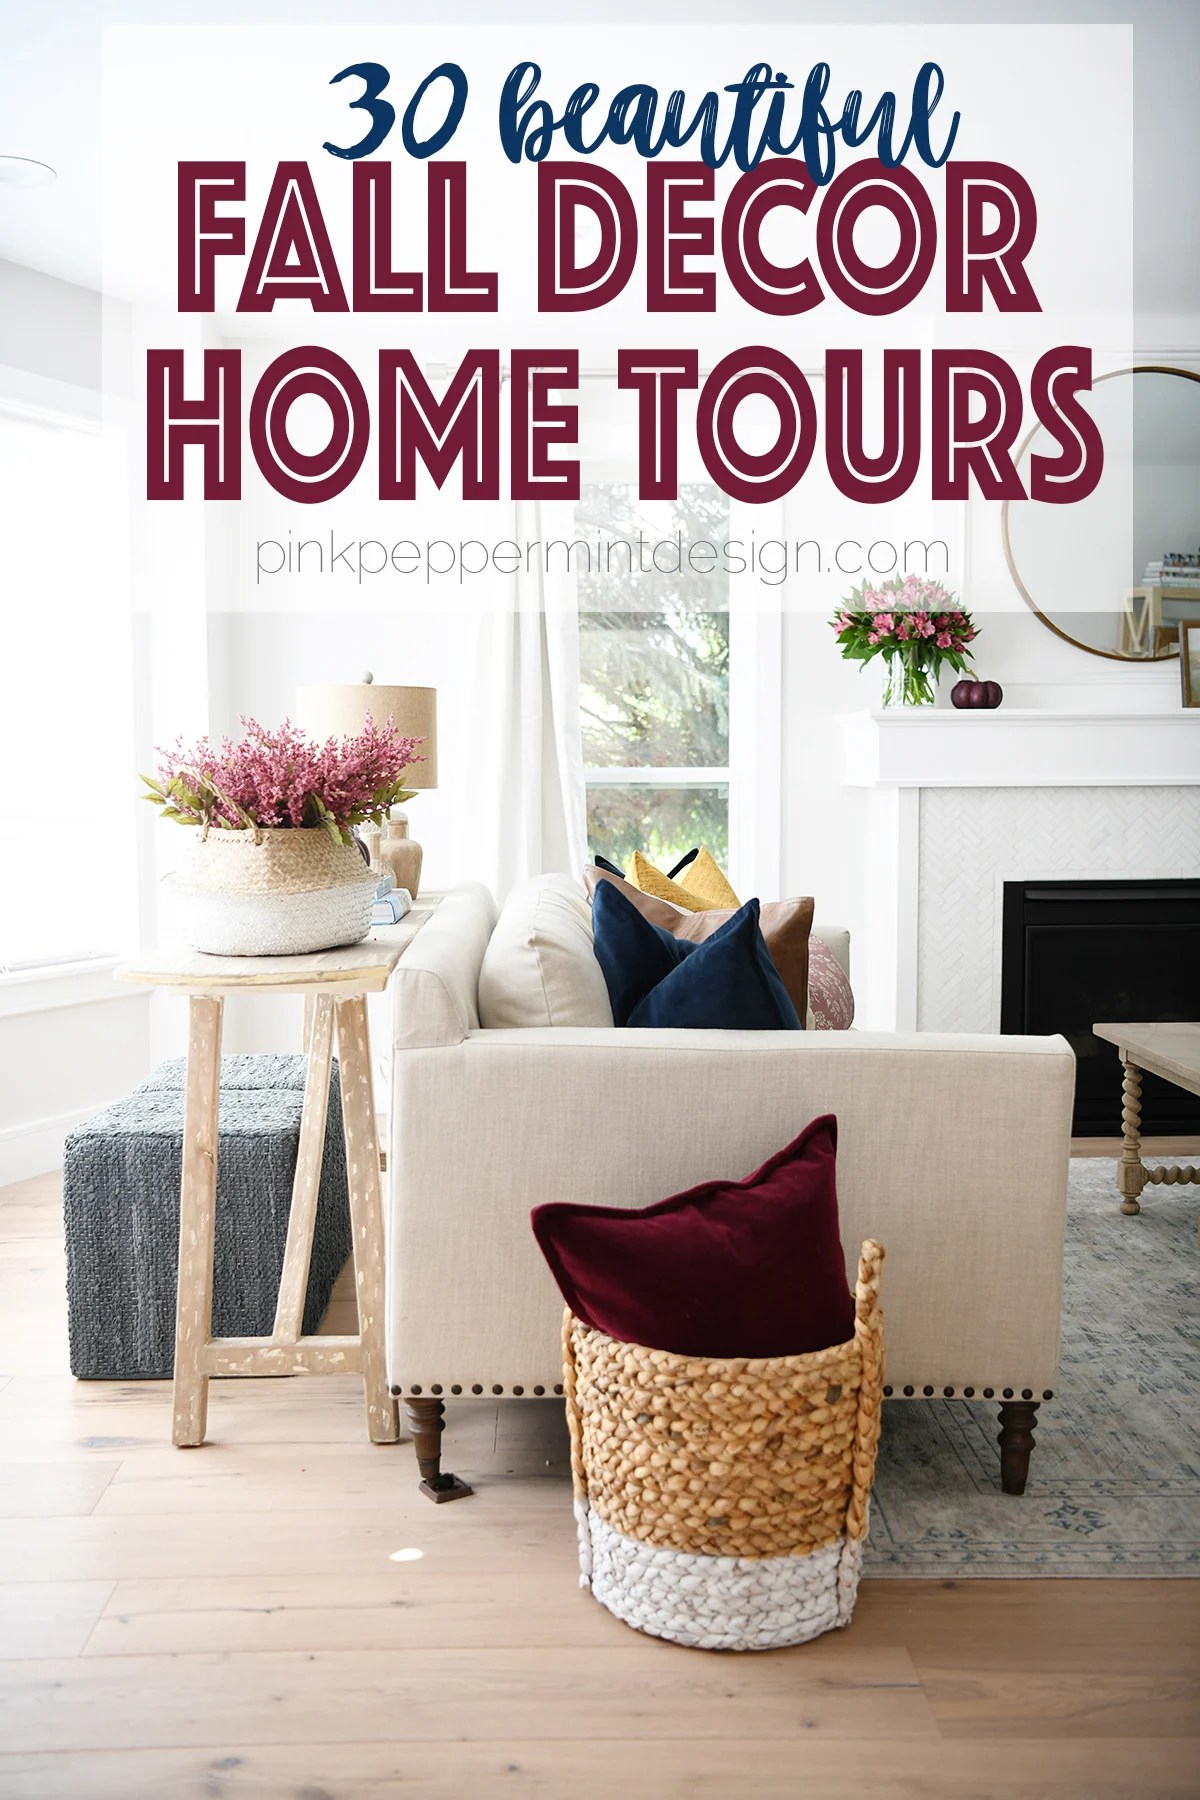 Fall Decor : 30 Beautiful Fall Room Decor Tours